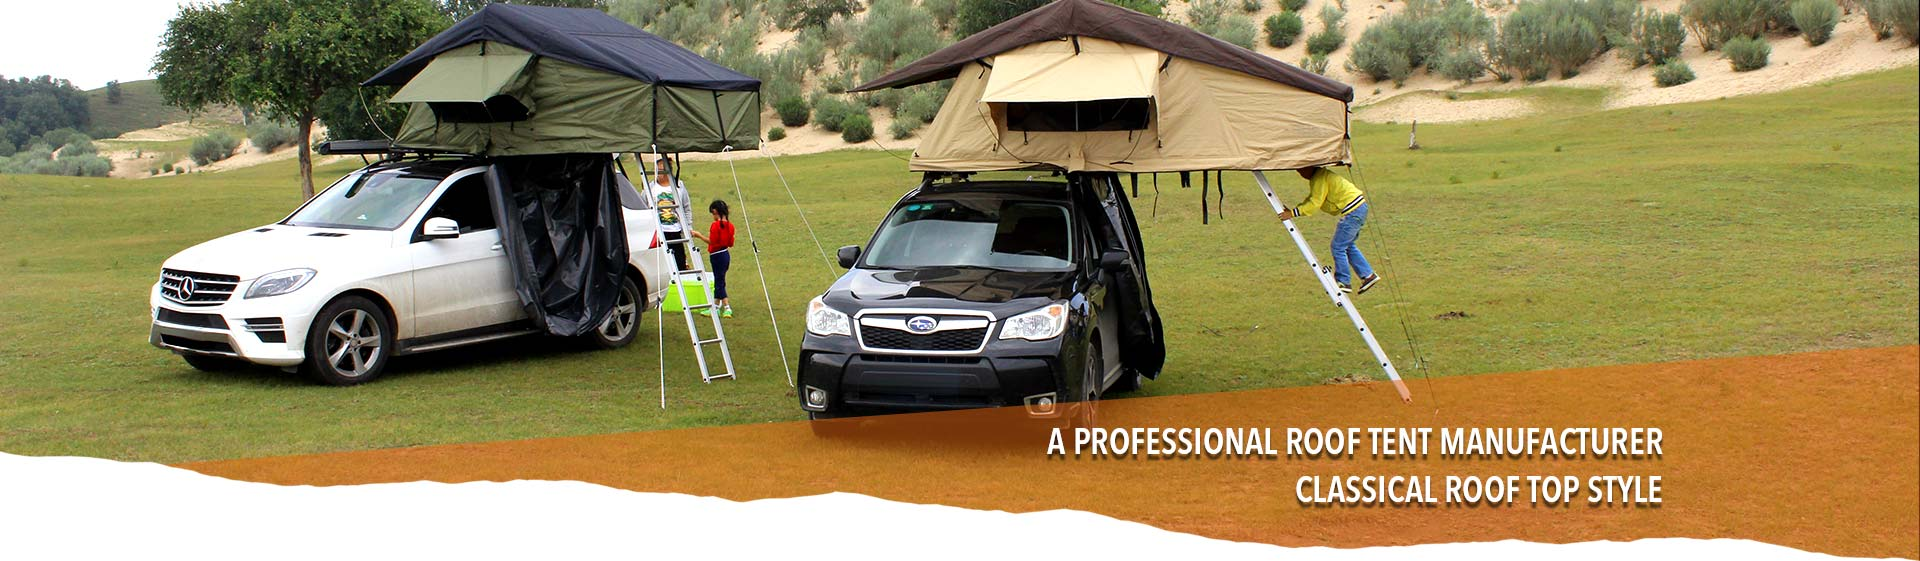 Roof Tent Manufacturer